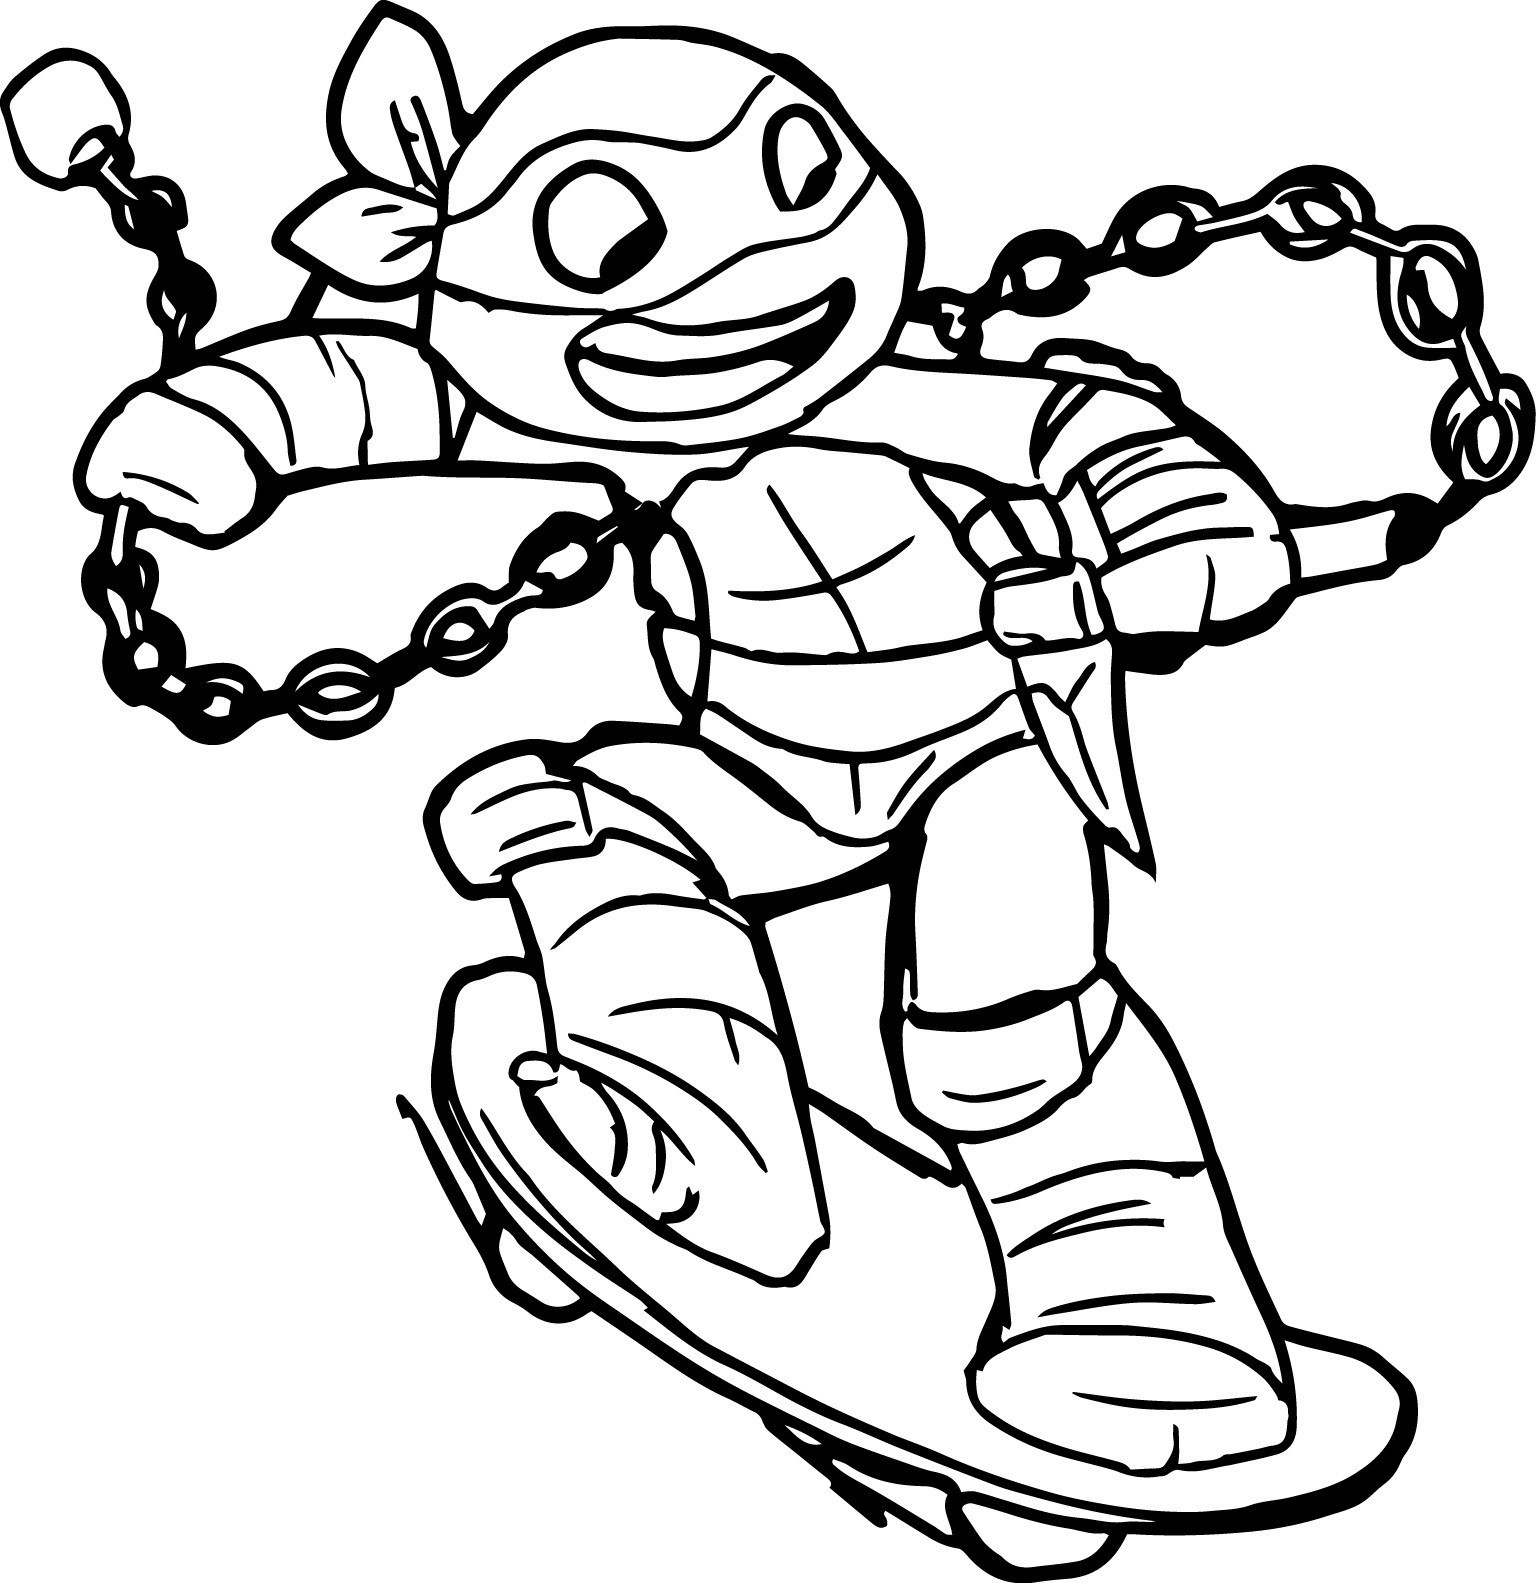 ninja turtle printable coloring pages coloring pages printable ninja turtles coloring pages printable ninja turtle pages coloring